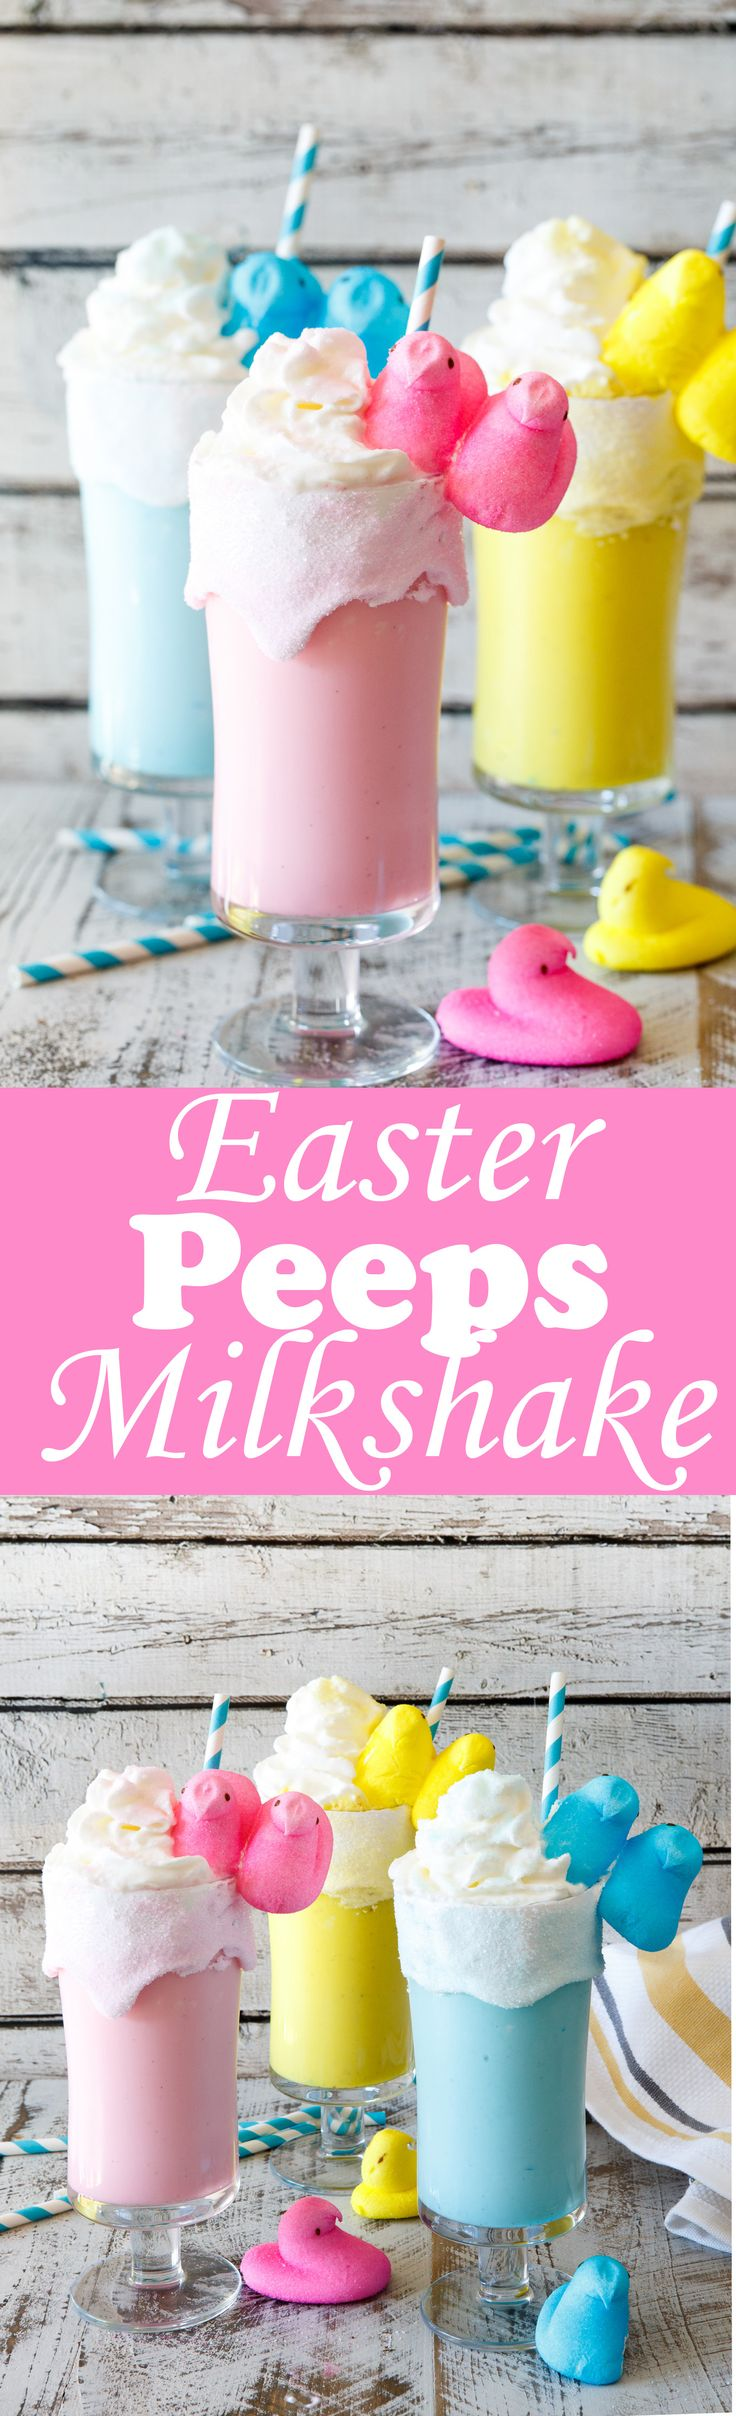 TOASTED MARSHMALLOW EASTER PEEPS MILKSHAKES RECIPE- With just a handful of ingredients, these kid-friendly Easter Peeps Milkshakes come together in just minutes and are perfect for dessert easy entertaining! ice cream treat